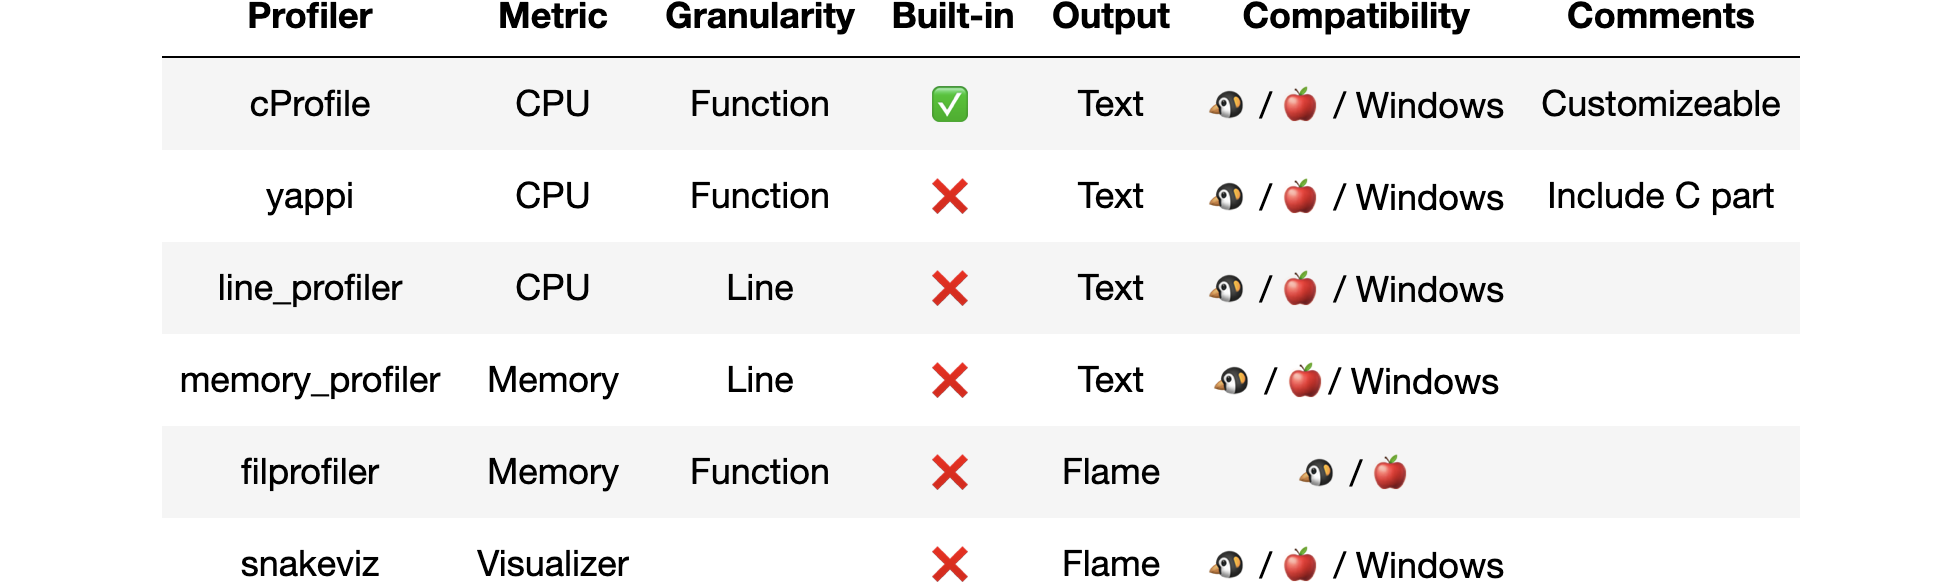 table comparing several offline profiling tools